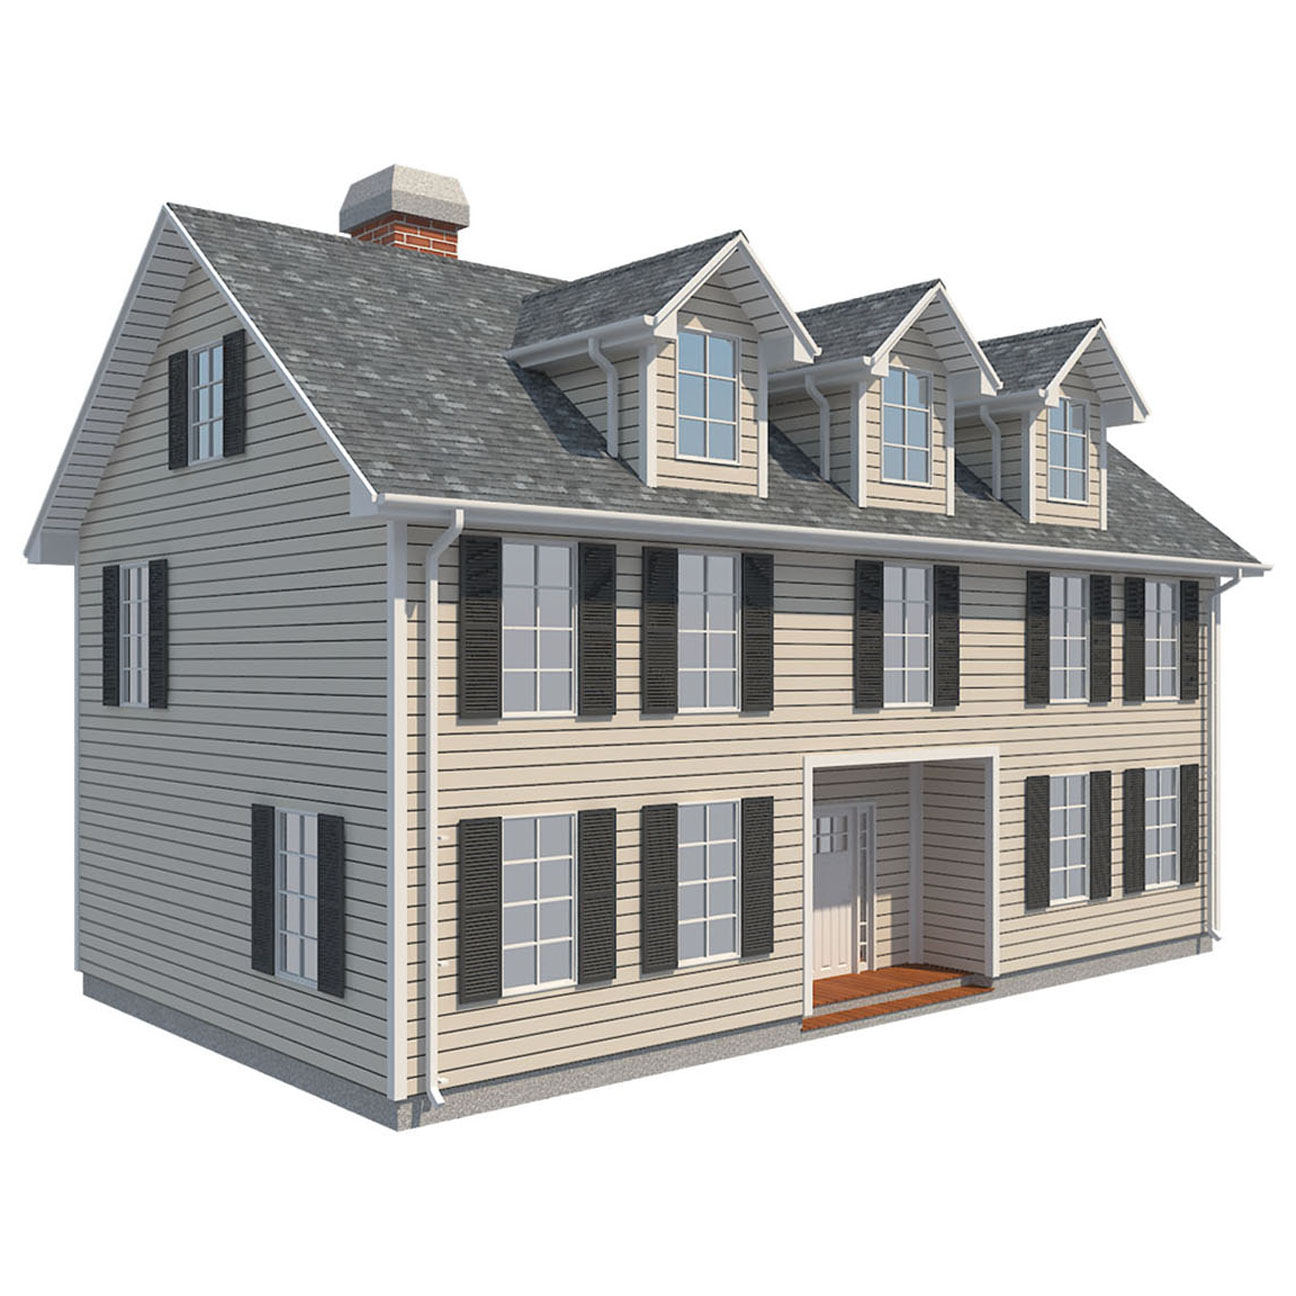 family house set collection 3d model 3ds max  fbx obj 270236